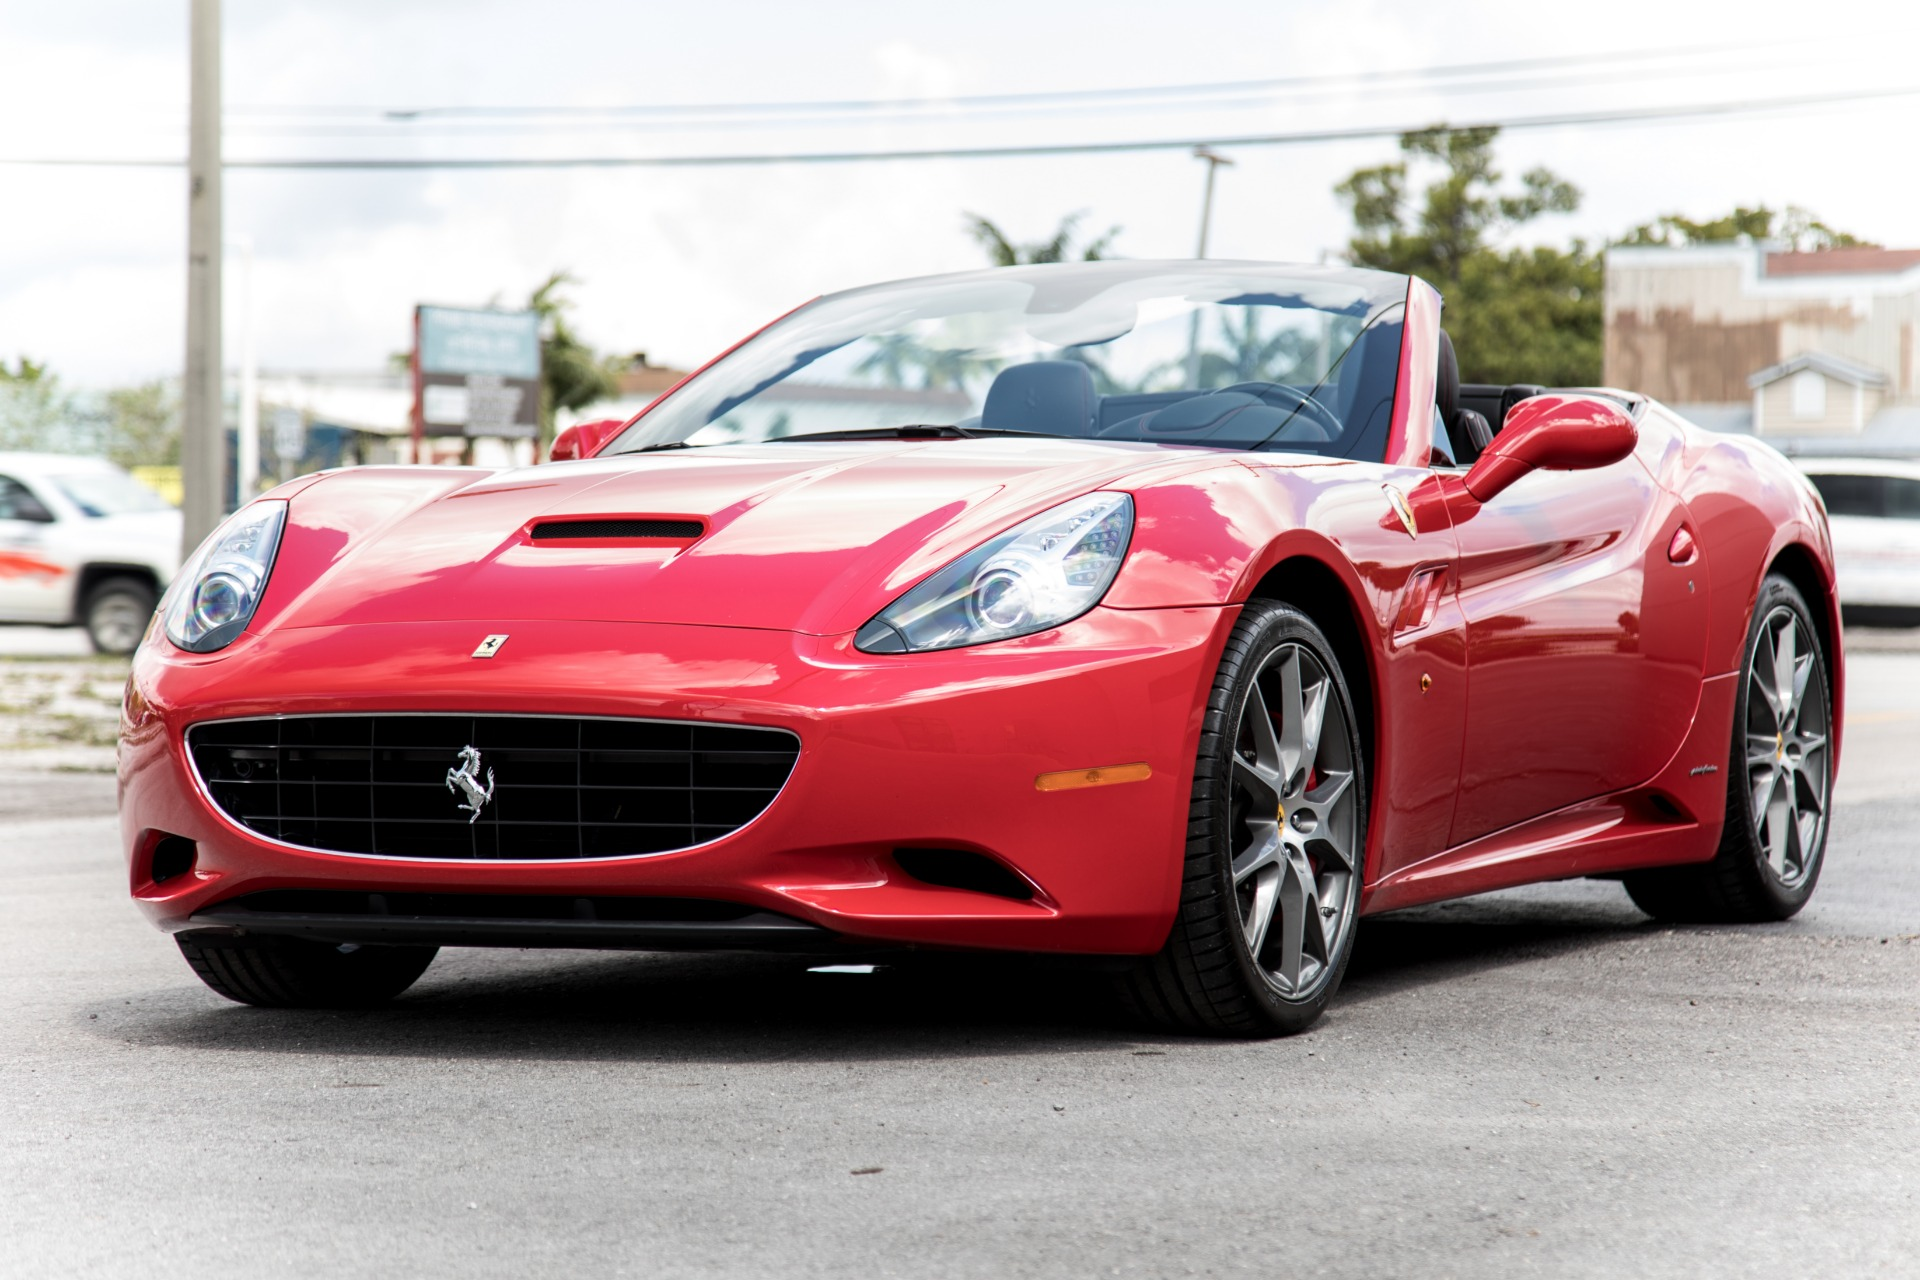 Used 2010 Ferrari California For Sale ($104,900)